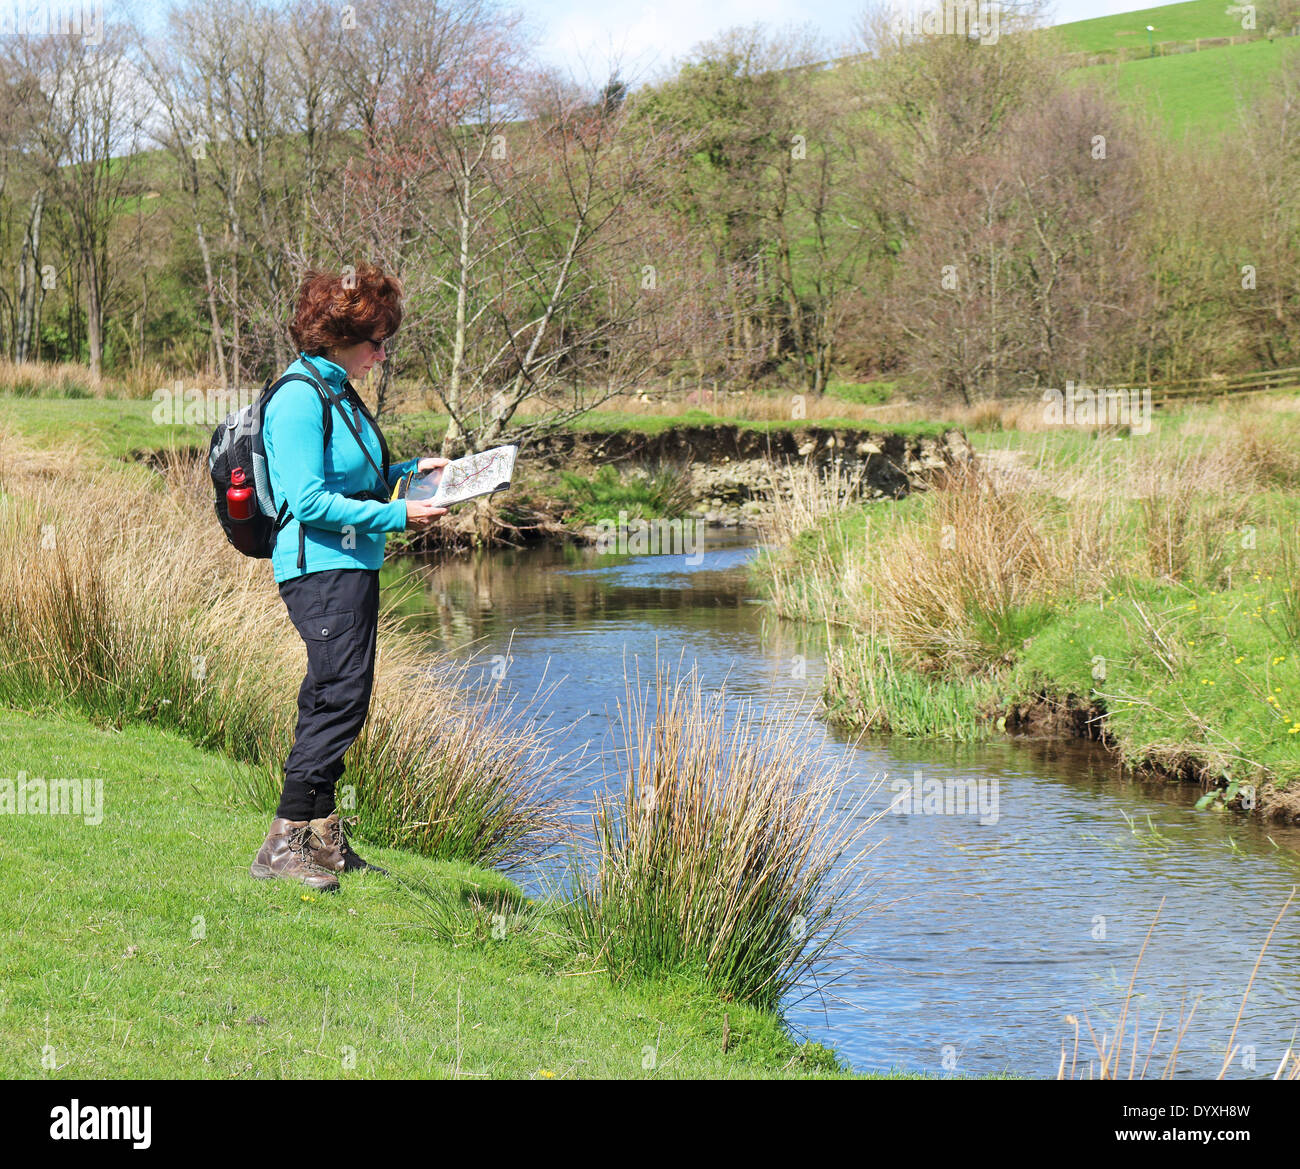 Lady Rambler standing by a river in Cumbria reading a map Stock Photo